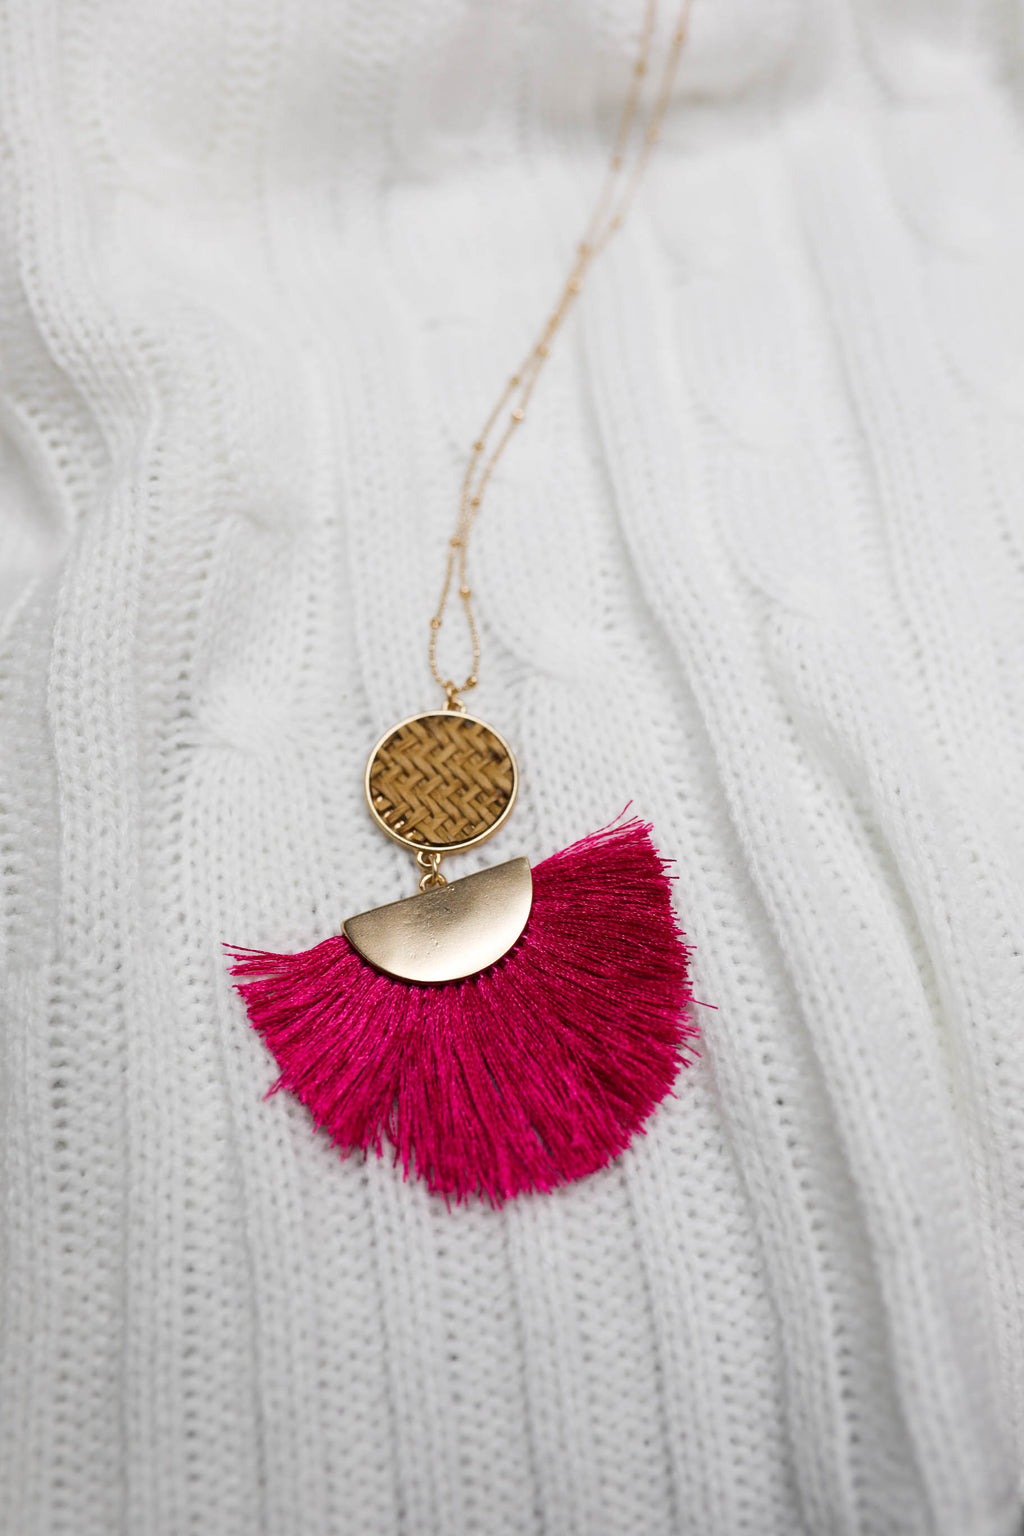 Dream Weaver Tassel Necklace,Accessories - Jewelry